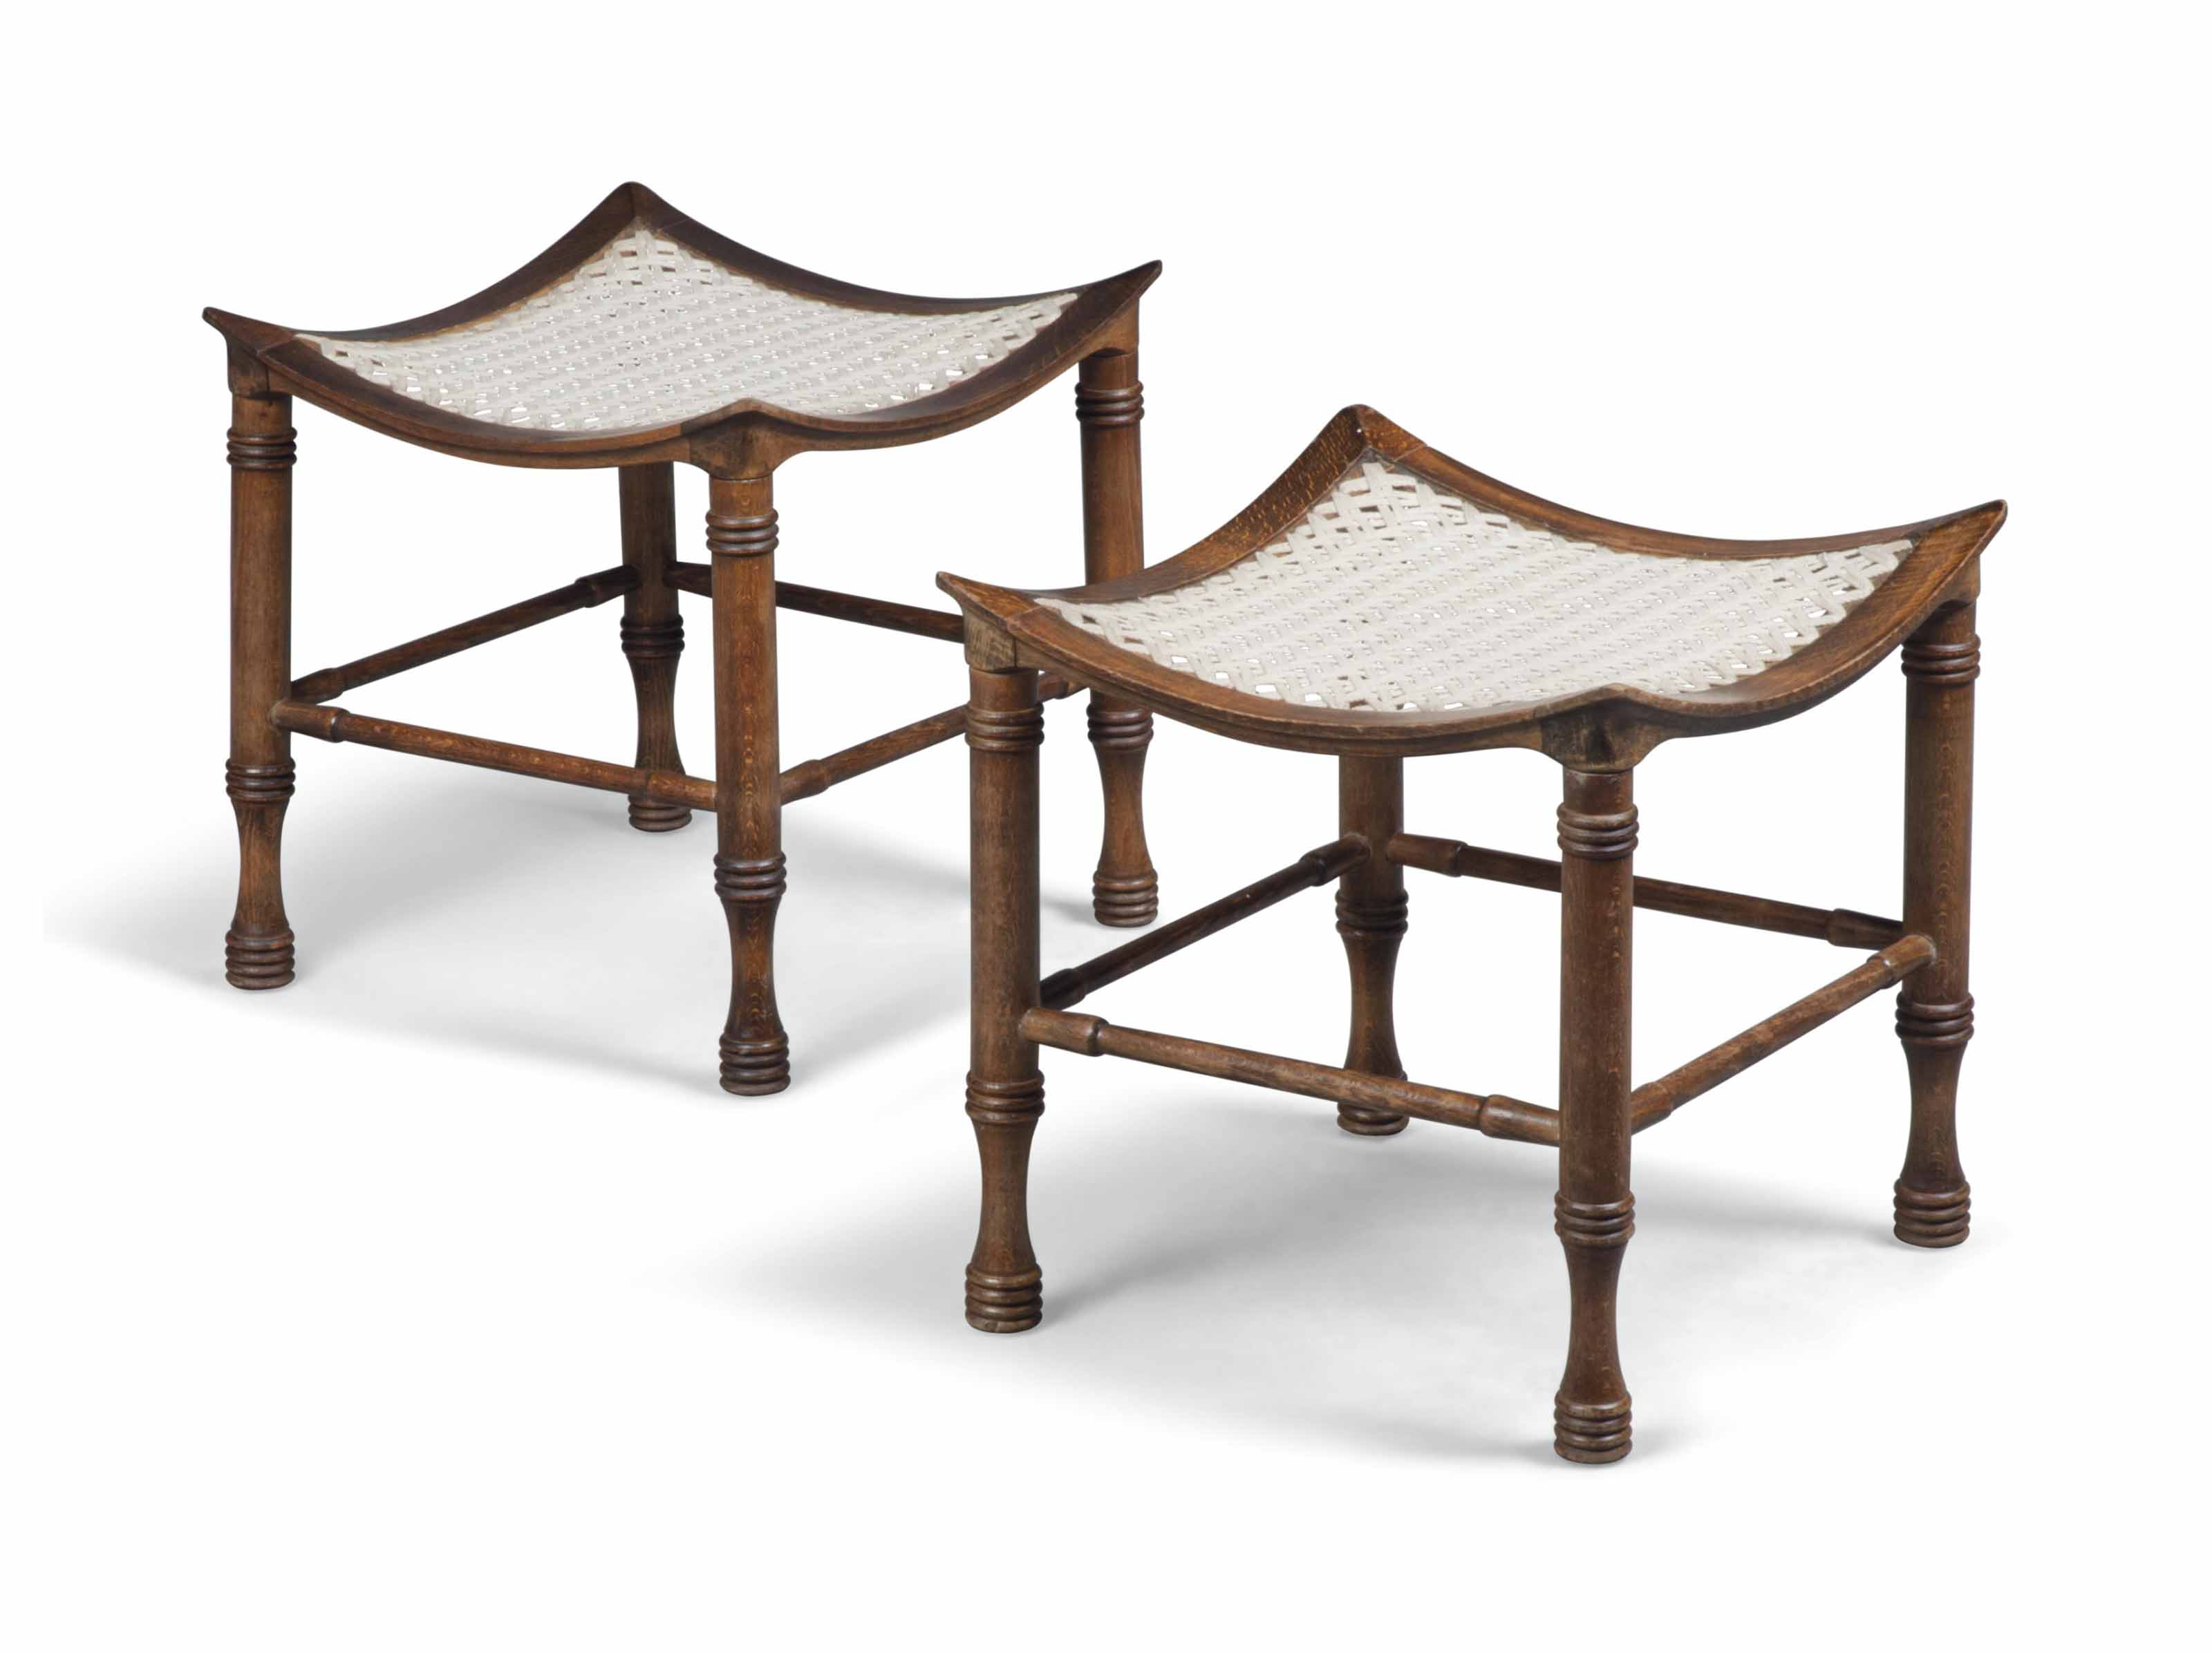 A PAIR OF 'THEBES' BEECH STOOLS ATTRIBUTED TO LIBERTY & CO